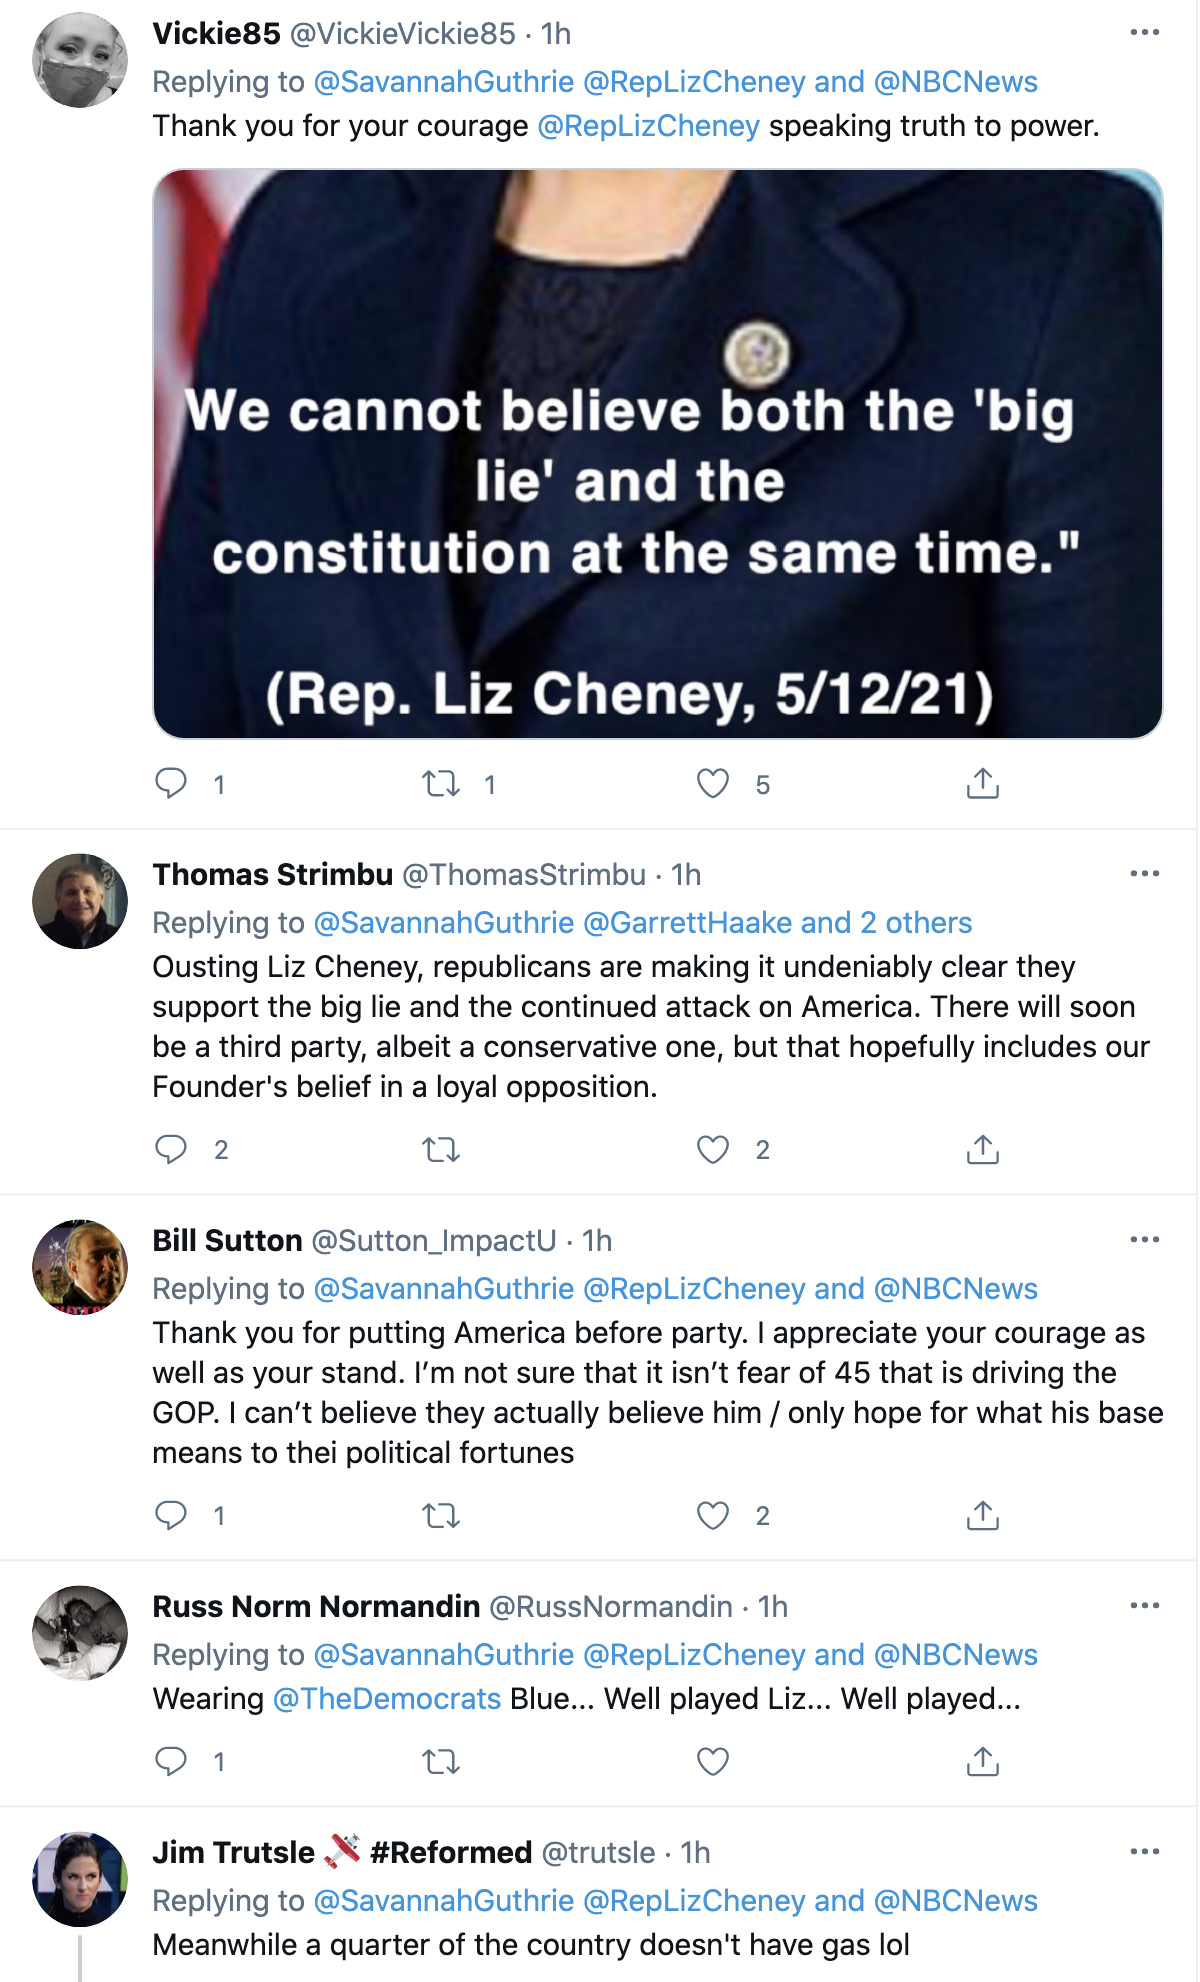 Screen-Shot-2021-05-12-at-10.58.32-AM Liz Cheney Puts GOP On Notice During Prime-Time Interview Corruption Featured National Security Politics Top Stories